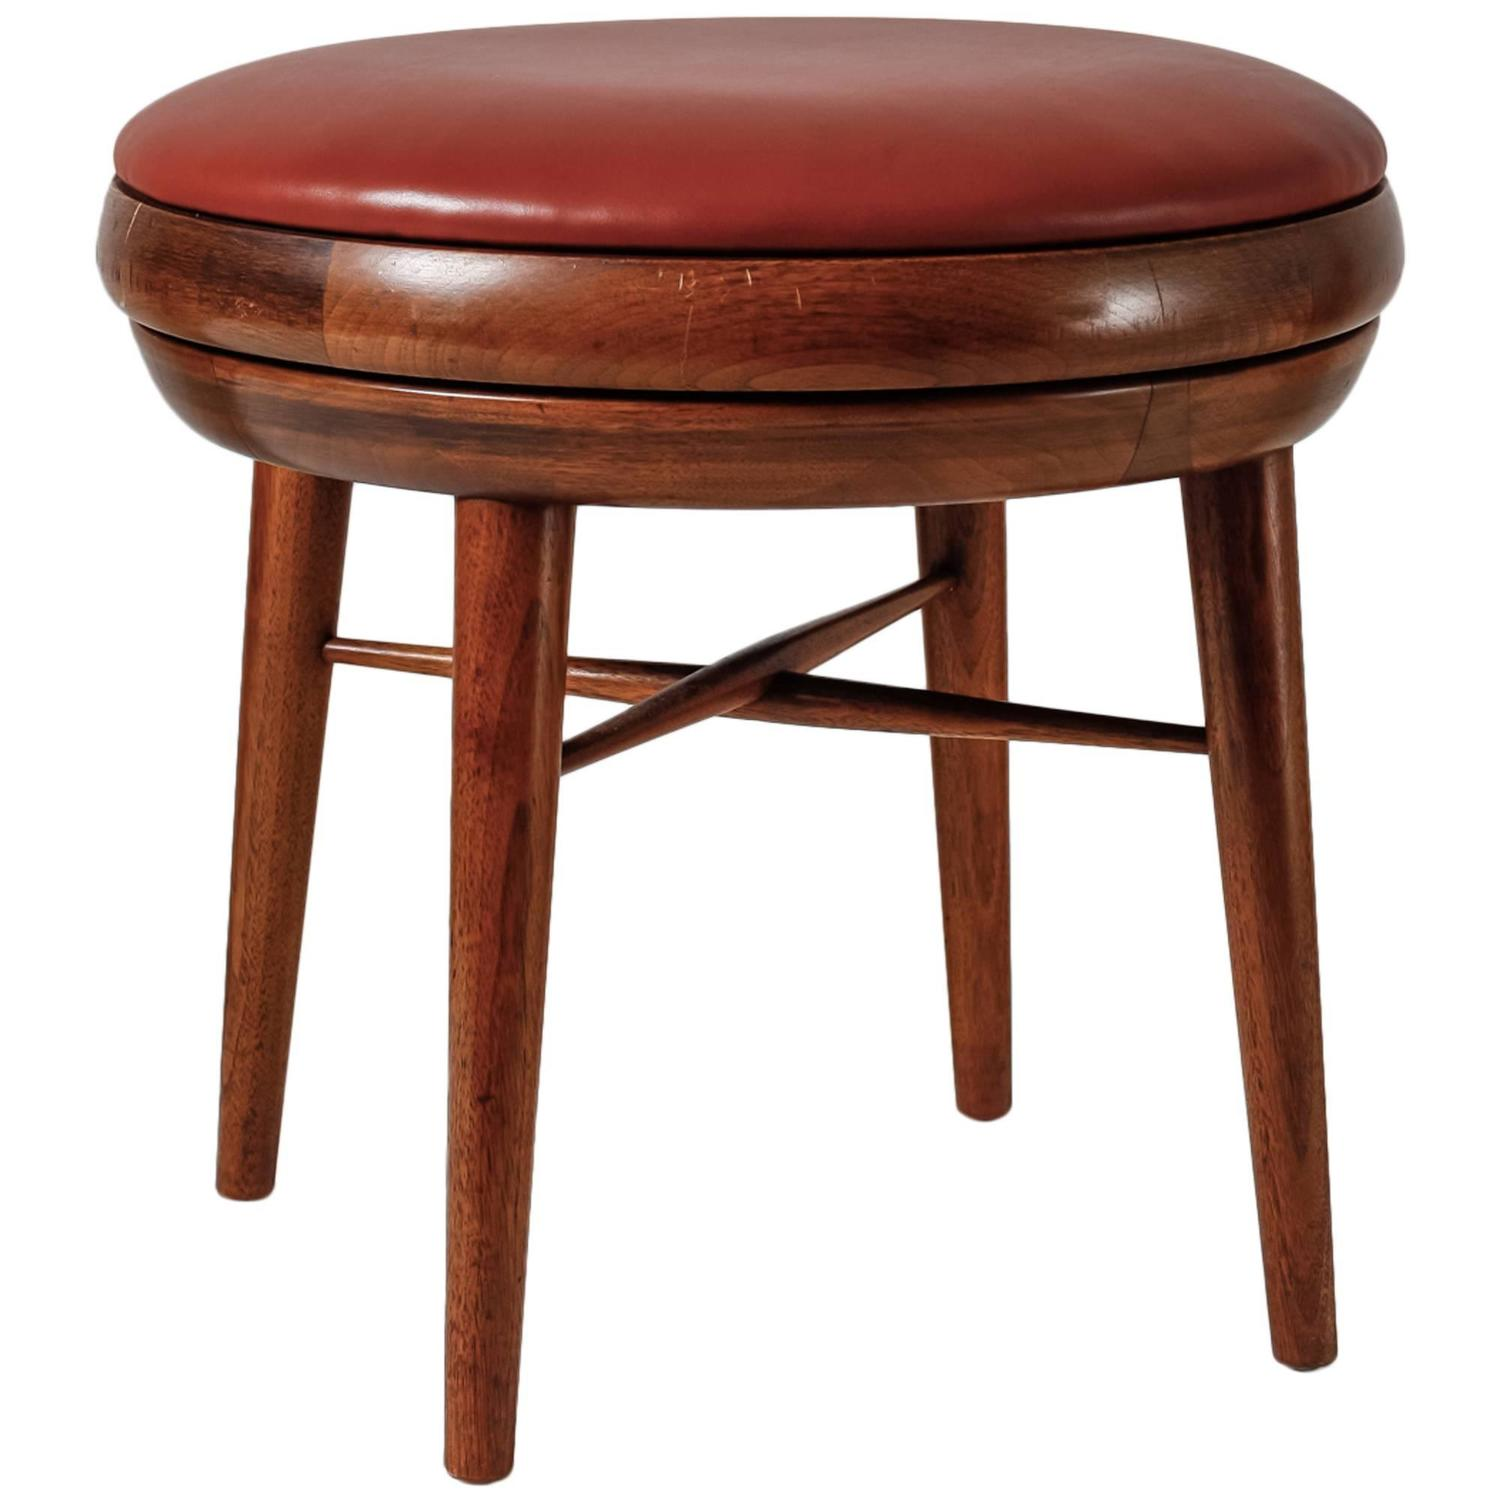 Leather and Walnut Swivel Stool USA 1950s at 1stdibs : 1353030z from www.1stdibs.com size 1500 x 1500 jpeg 101kB